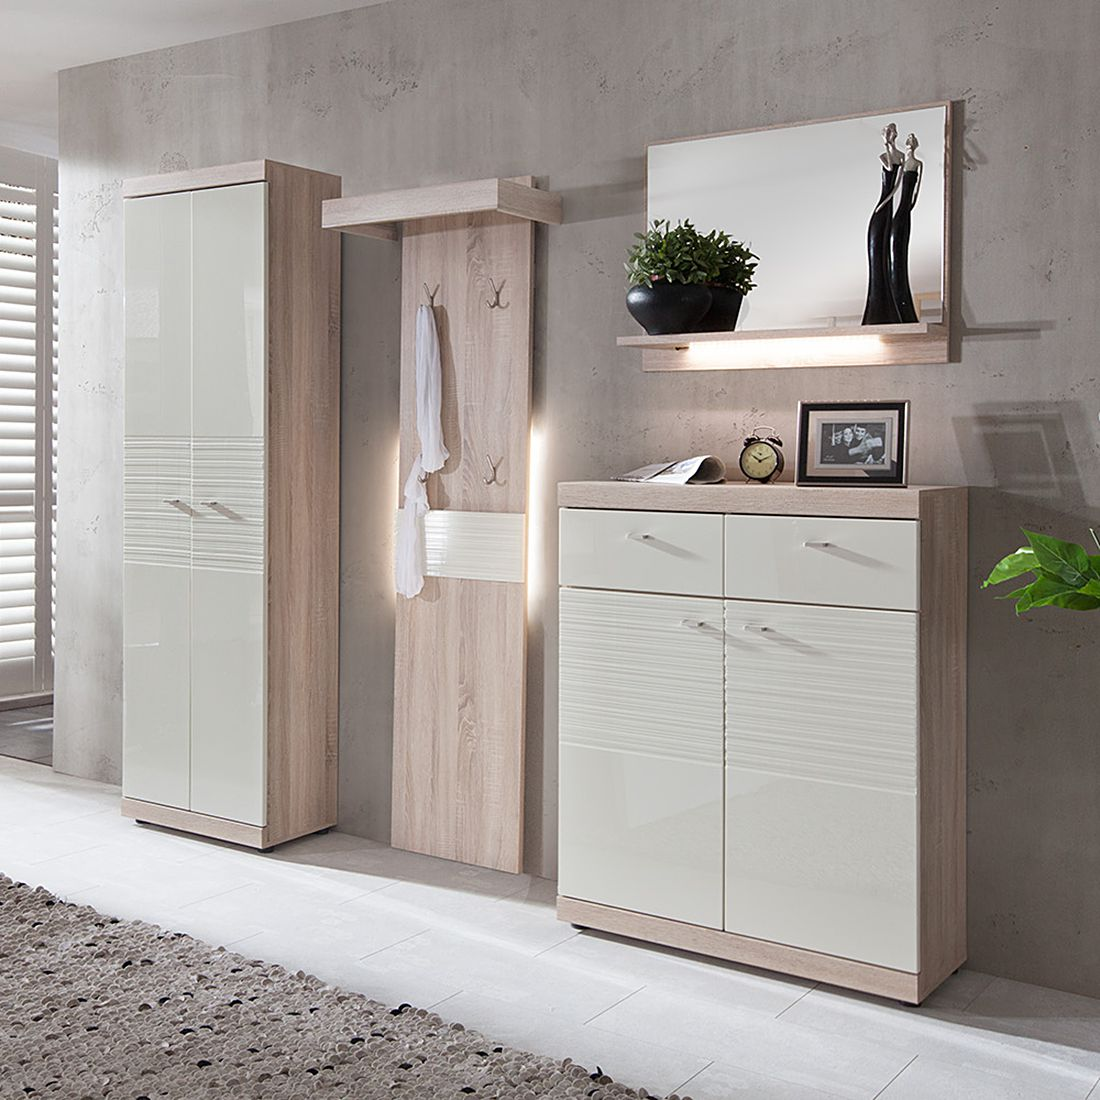 garderobe lorica 4 teilig eiche hell creme wei. Black Bedroom Furniture Sets. Home Design Ideas